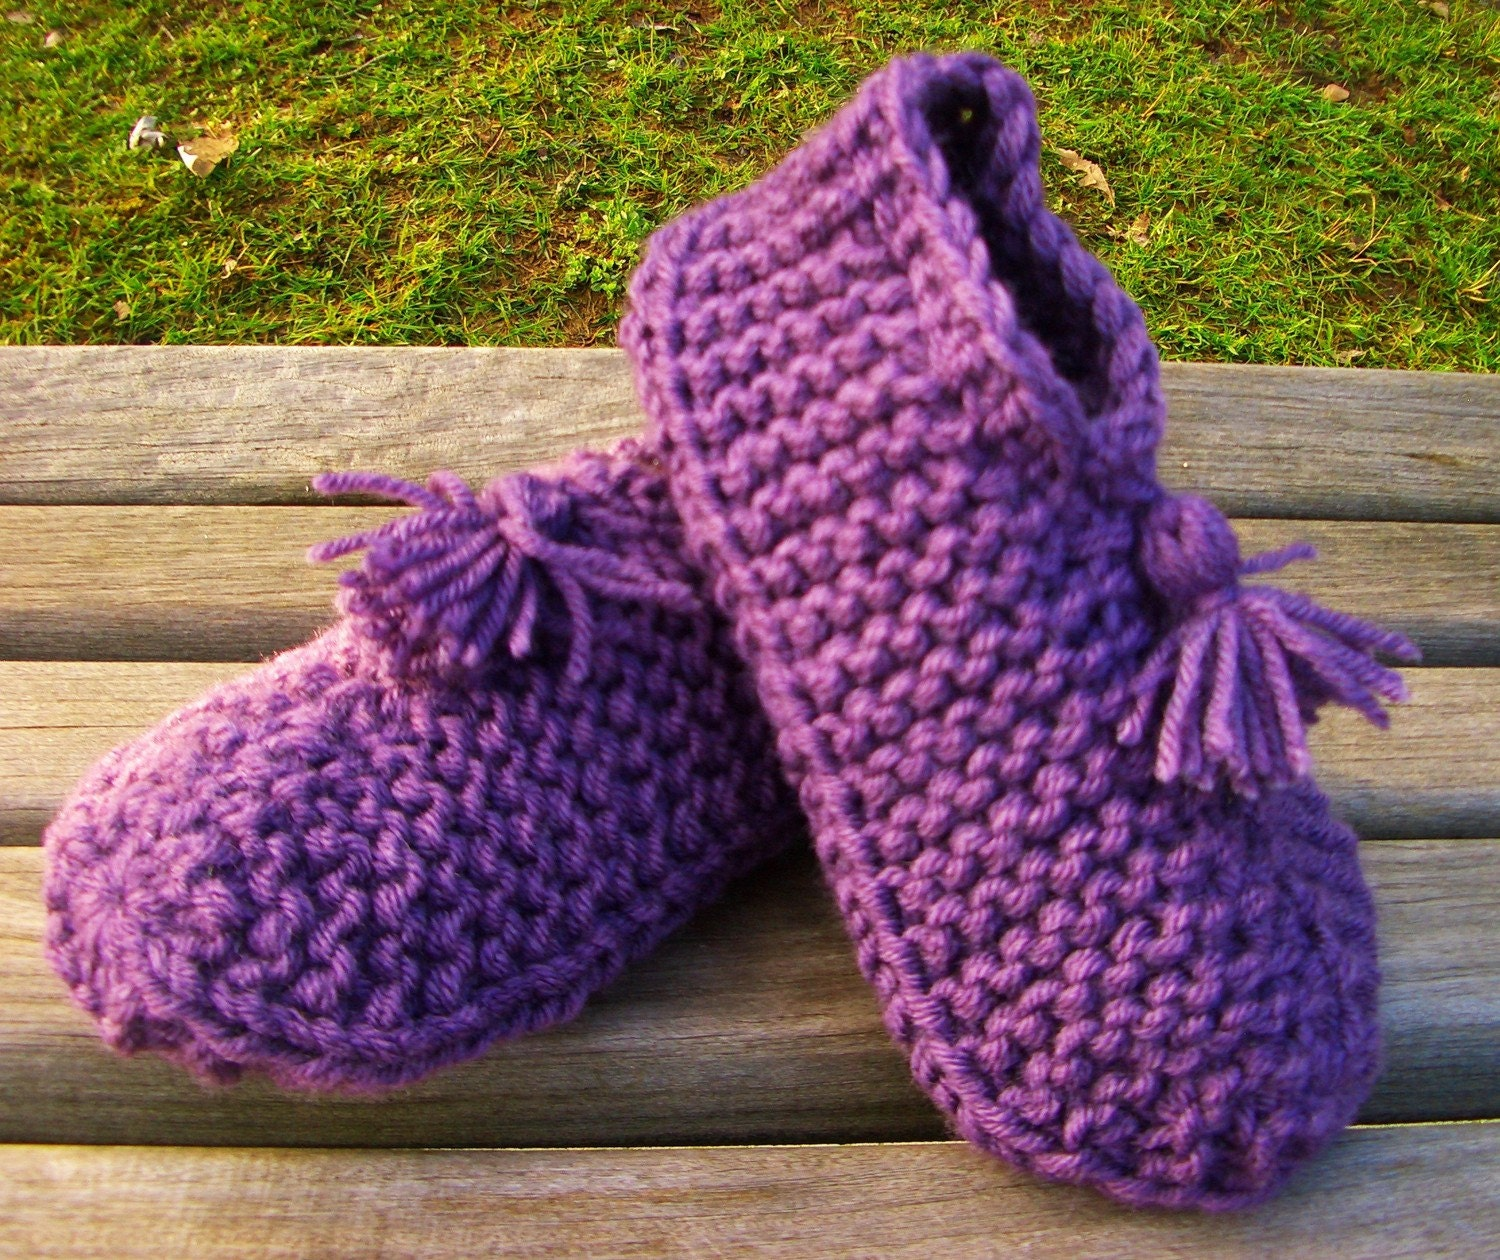 Slipper Pattern Knit Patterns Gallery